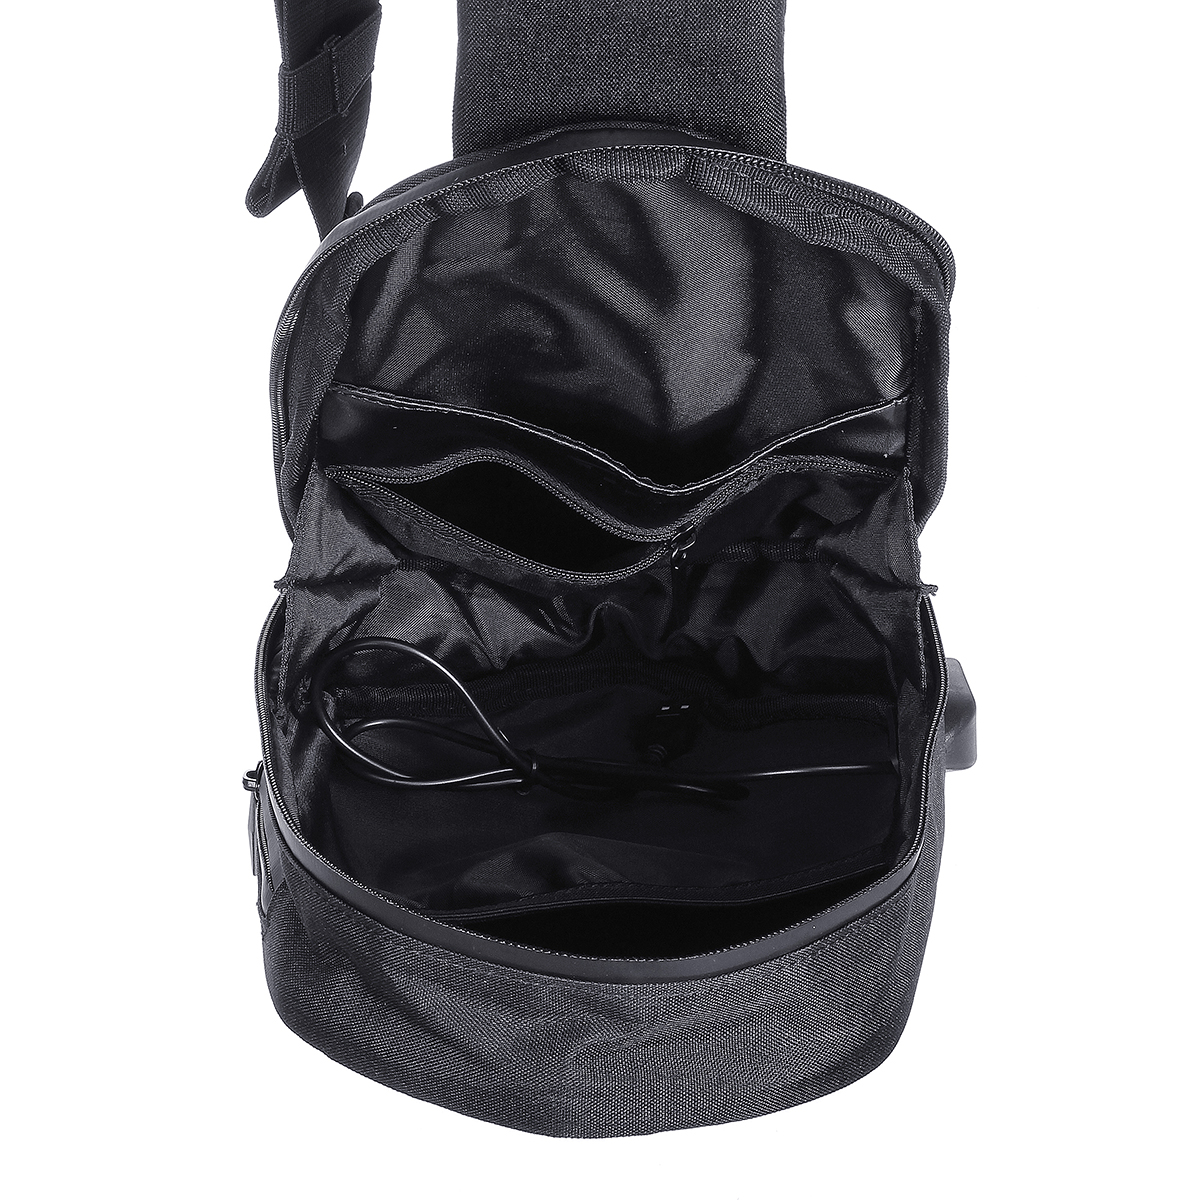 BEABORN Polyhedron PU Backpack USB Bag Waterproof Colorful Leisure Sports Chest Pack Bags For Mens Women Travel Camping from xiaomi youpin